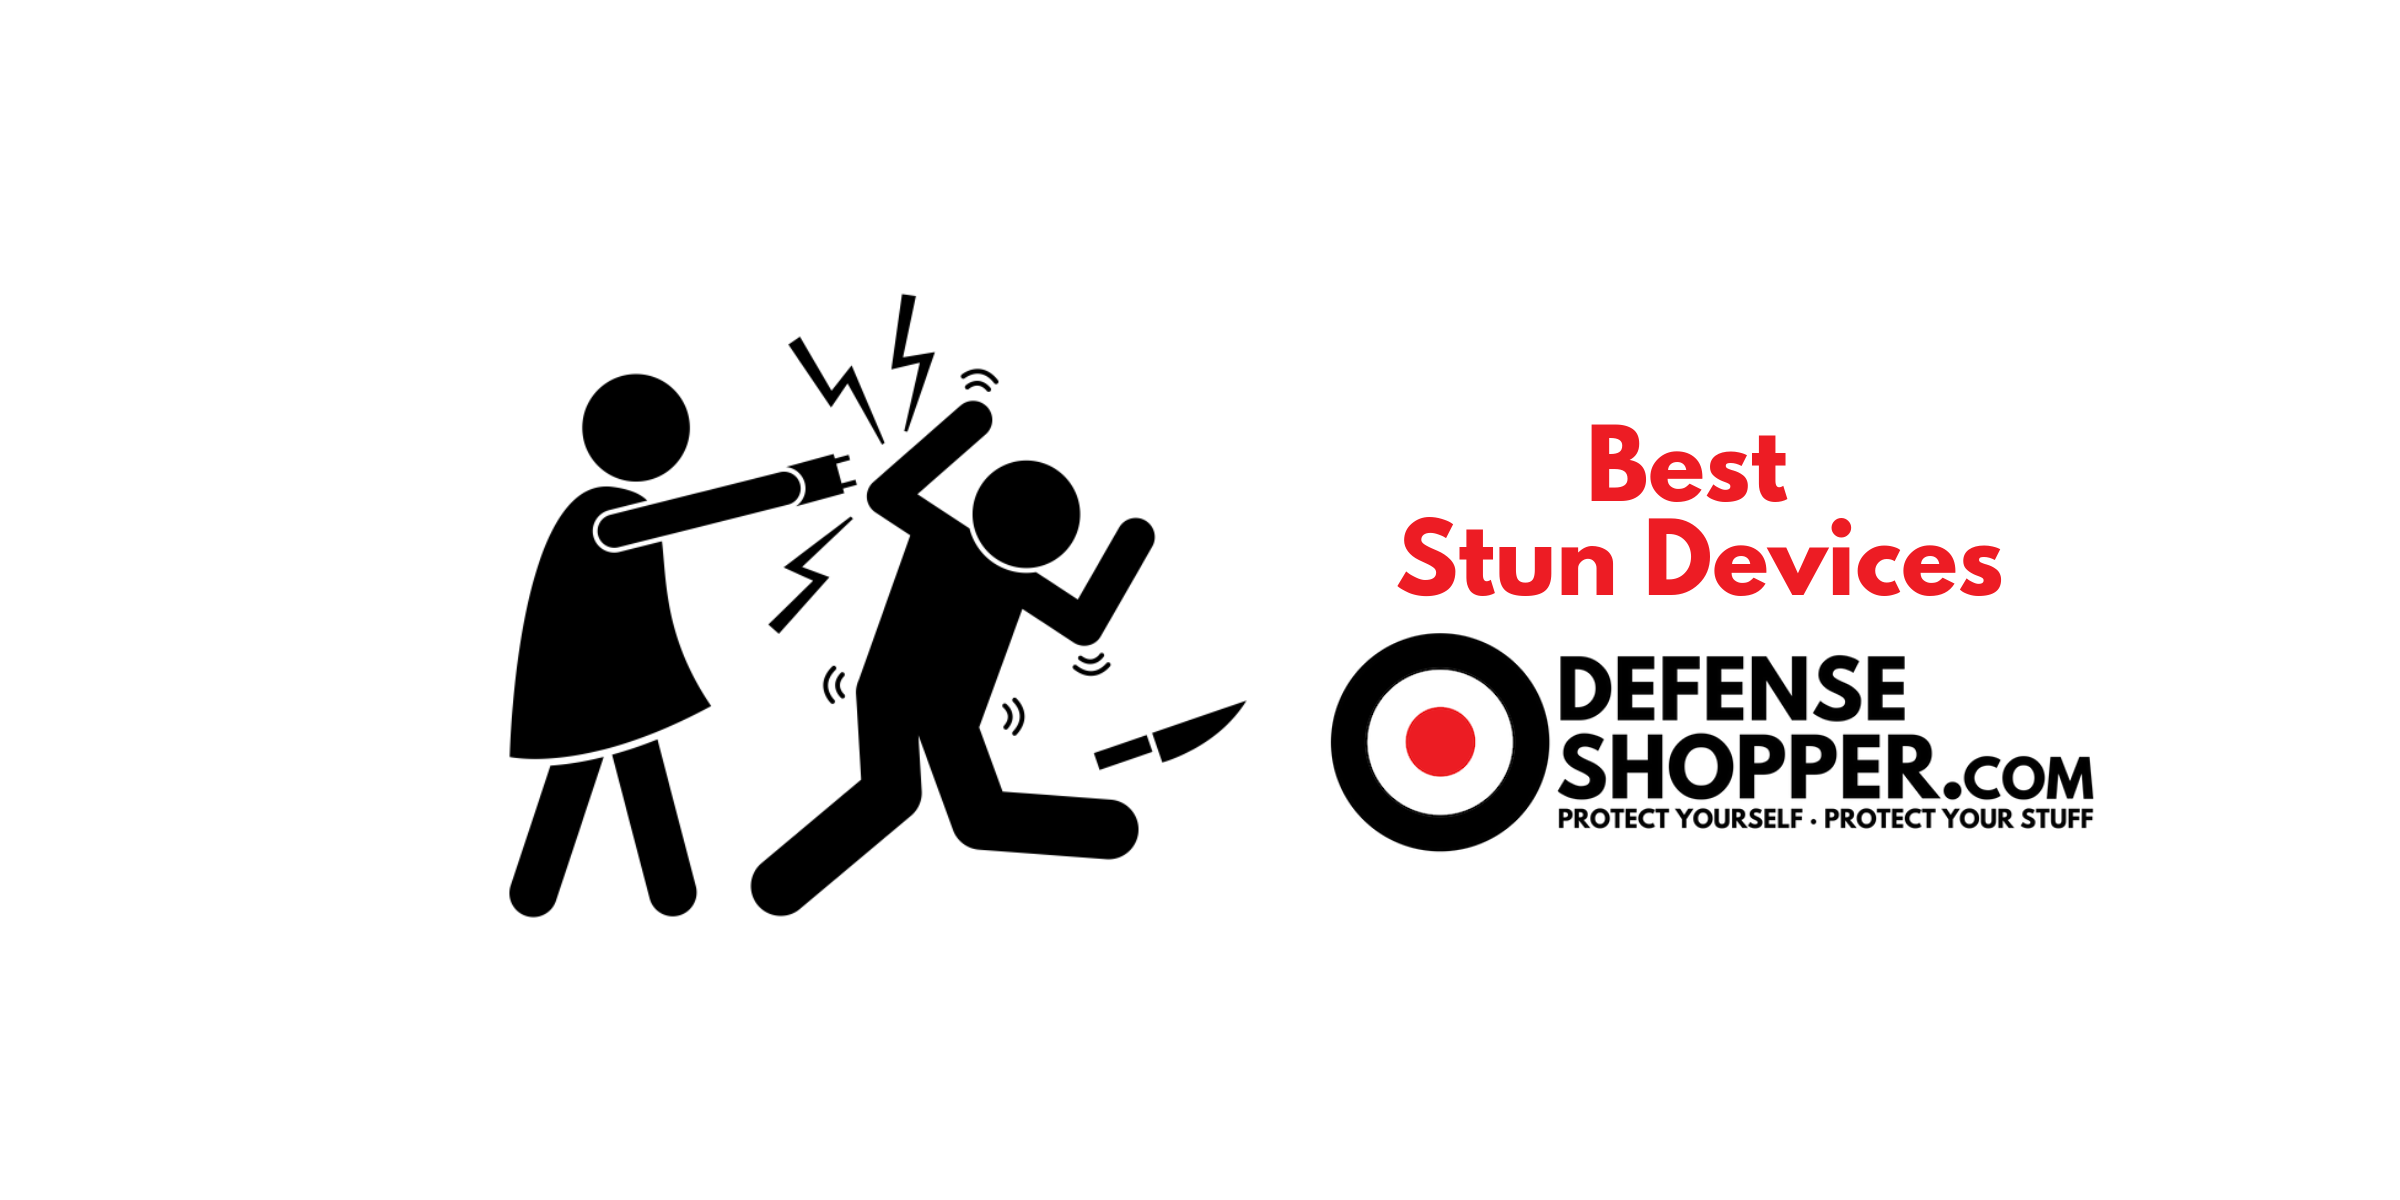 Best Stun Devices from DefenseShopper